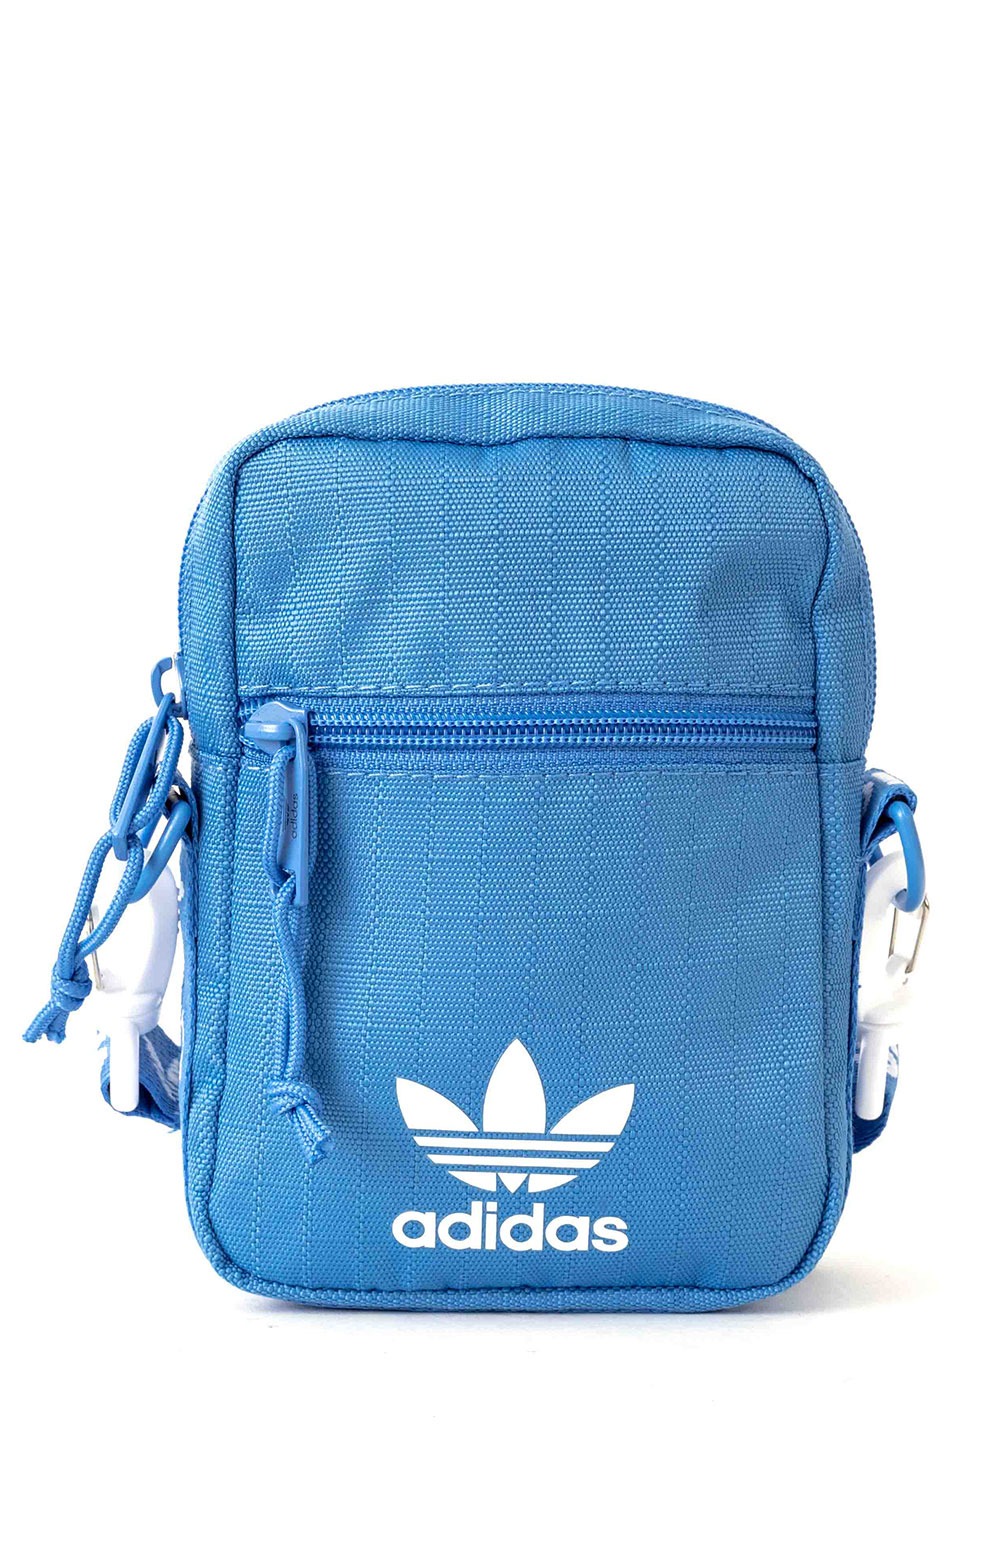 Originals Festival Crossbody Bag - Real Blue